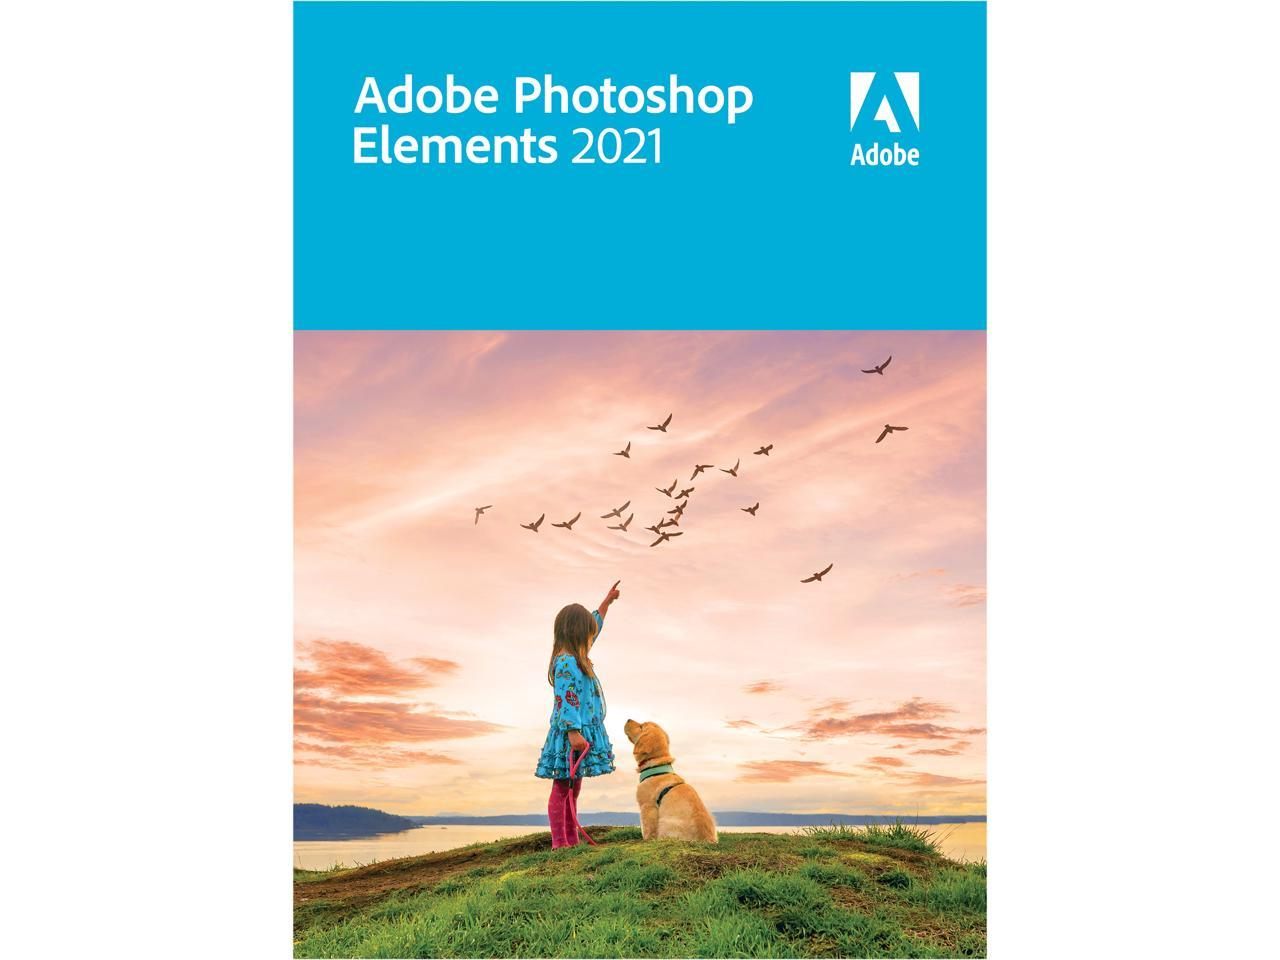 Adobe Photoshop Elements 2021 - Windows & Mac